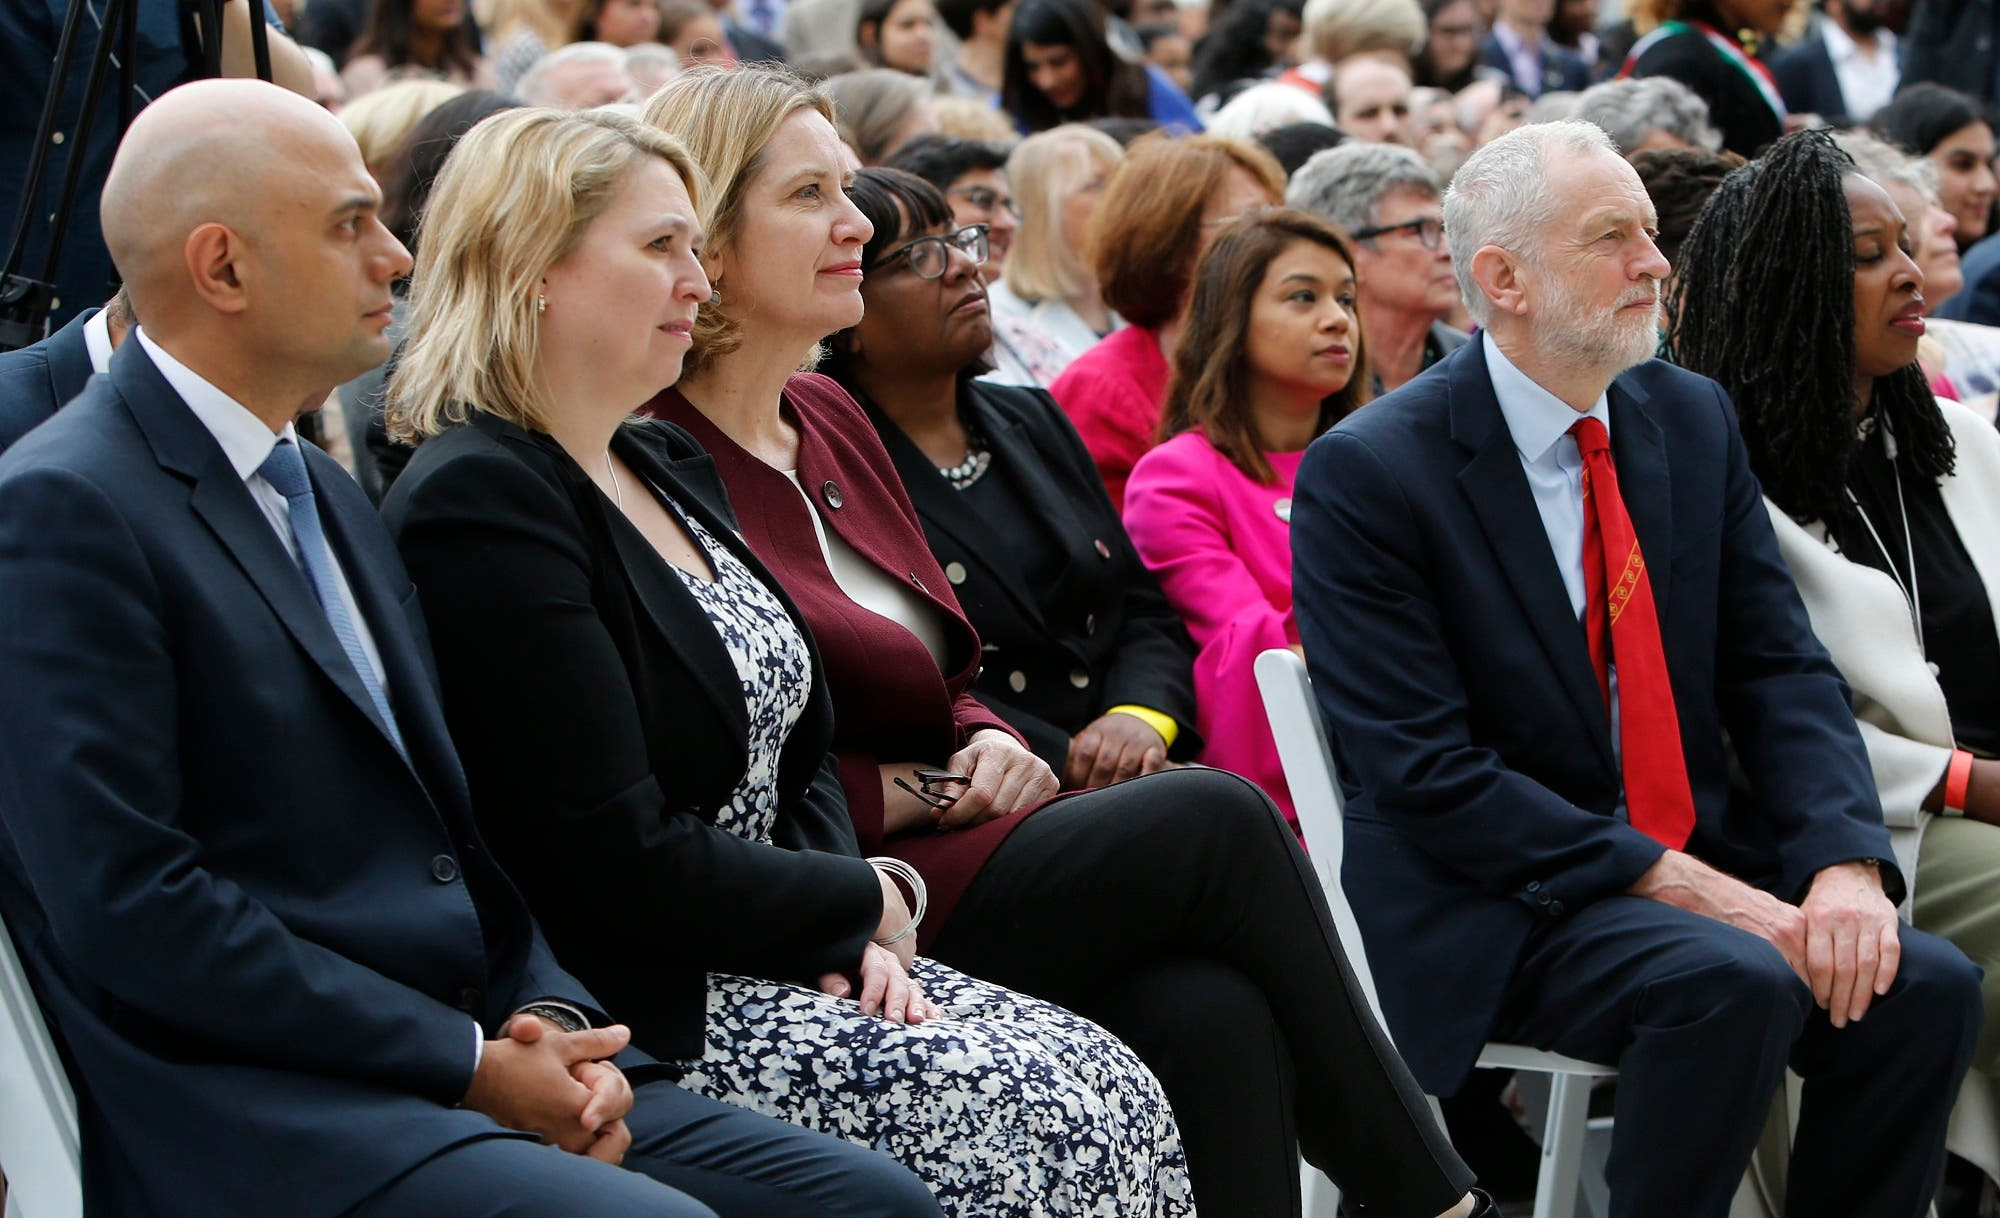 Sajid Javid left, with Karen Bradley Secretary of State for Northern Ireland, Amber Rudd the then Home Secretary, Labor MP Diane Abbott, Labor Party leader Jeremy Corbyn, second right and Labor MP Dawn Butler, right, watch the unveiling a statue of Millicent Fawcettin Parliament Square, London on April 24, 2018. (AP)